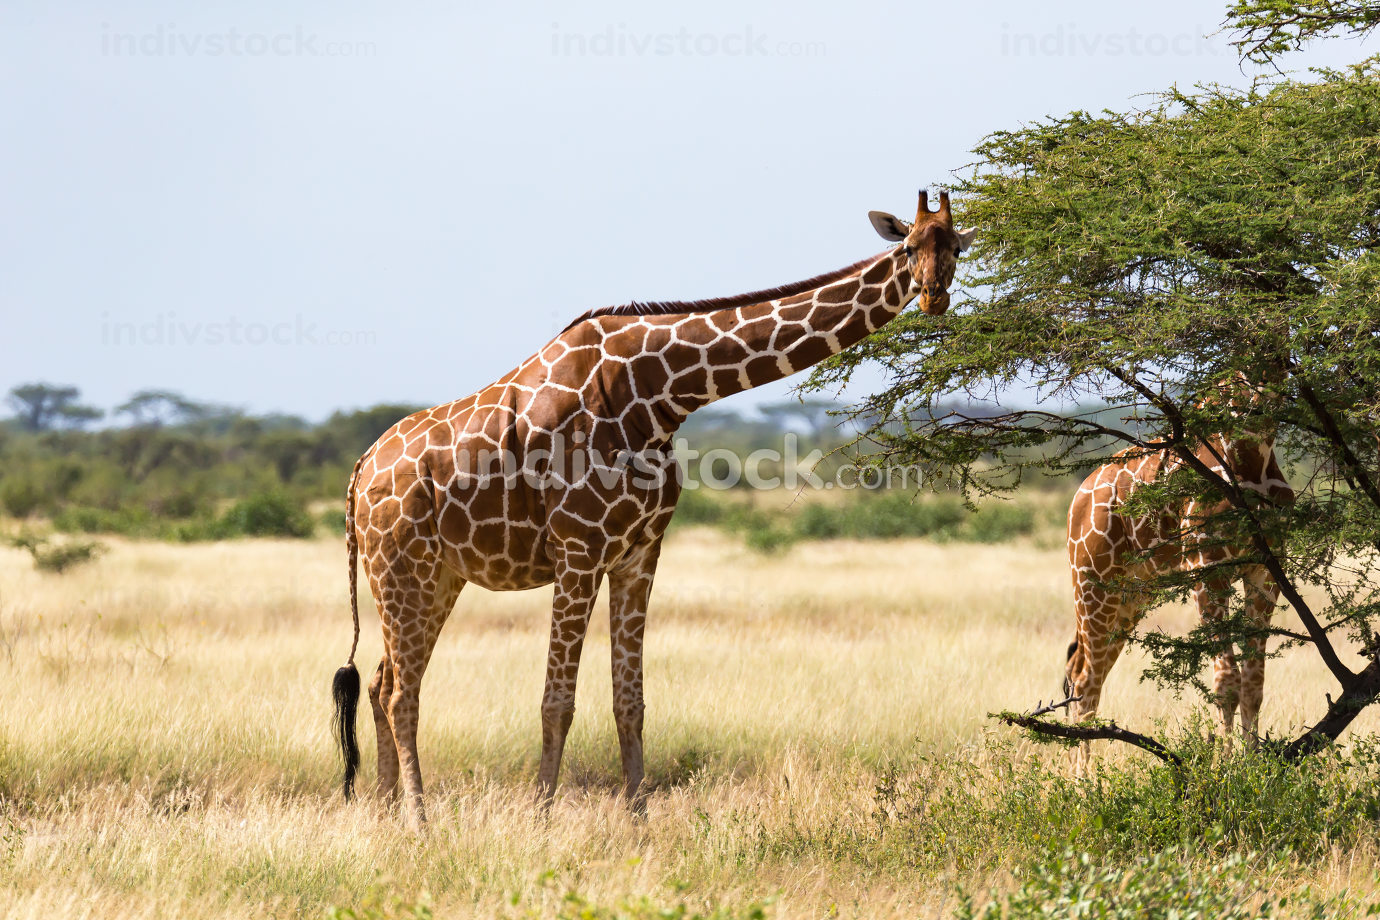 A giraffe group eats the leaves of the acacia trees